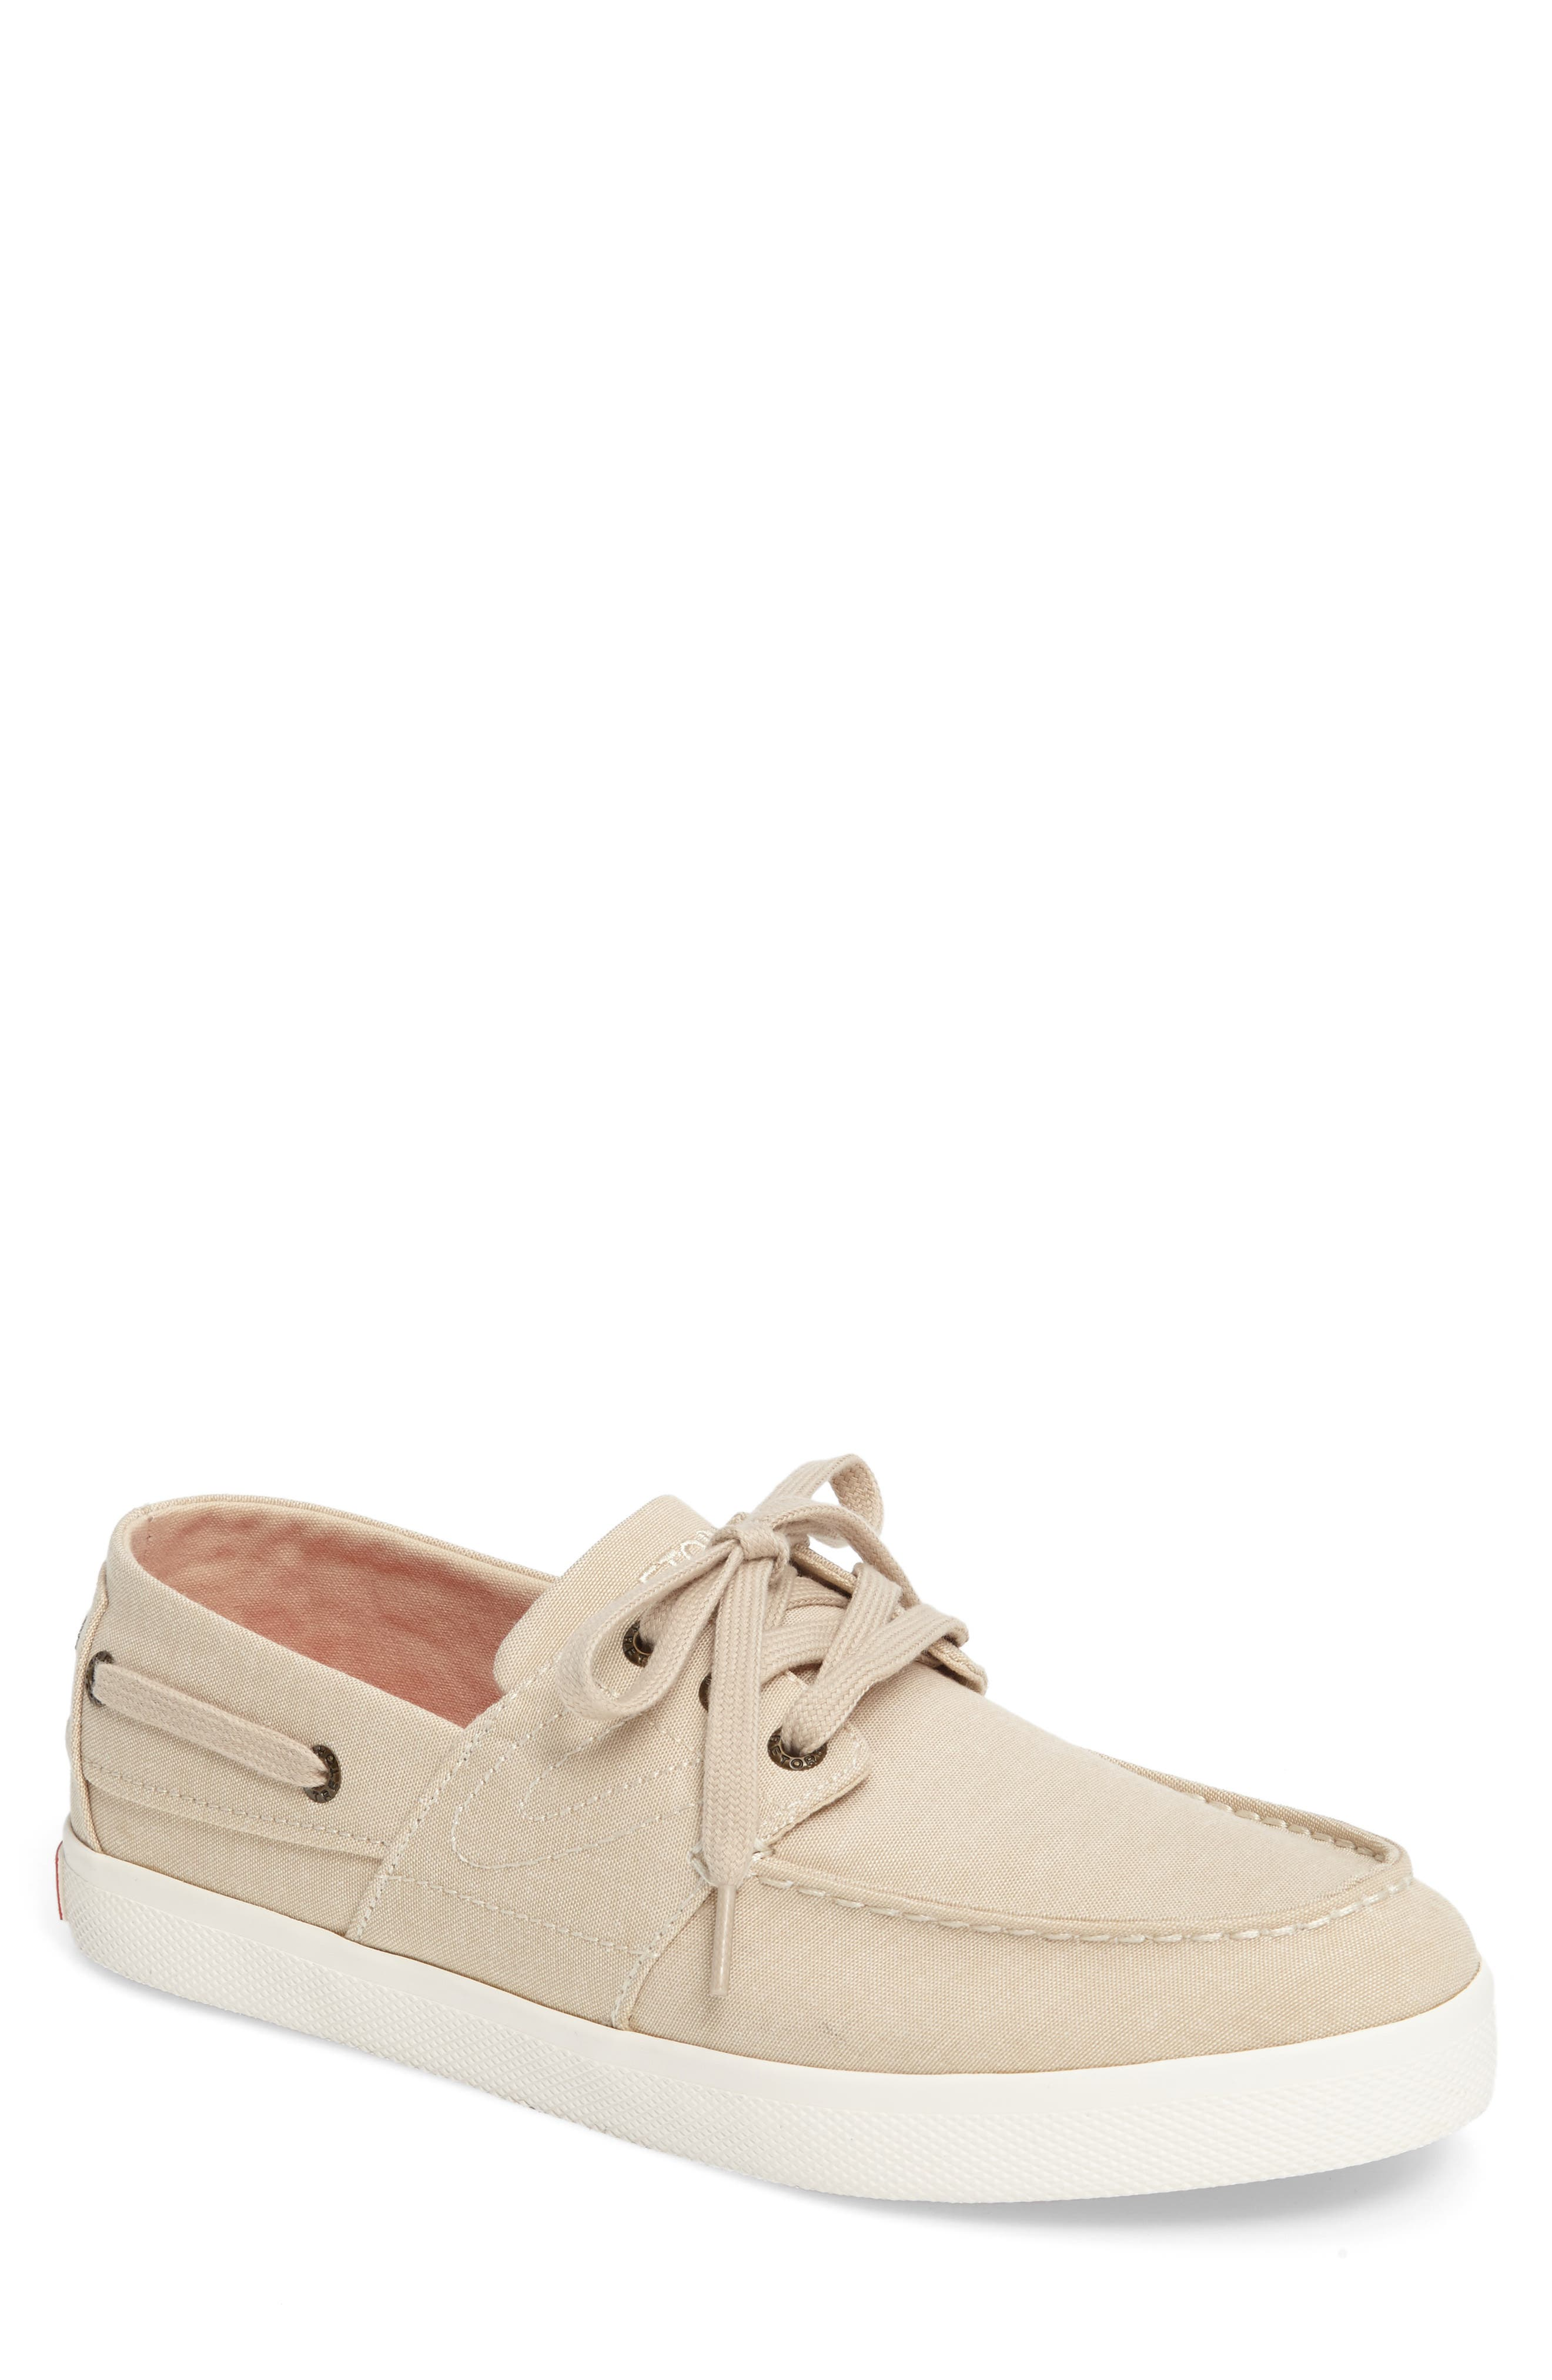 Motto Boat Shoe,                         Main,                         color, OYSTER CANVAS